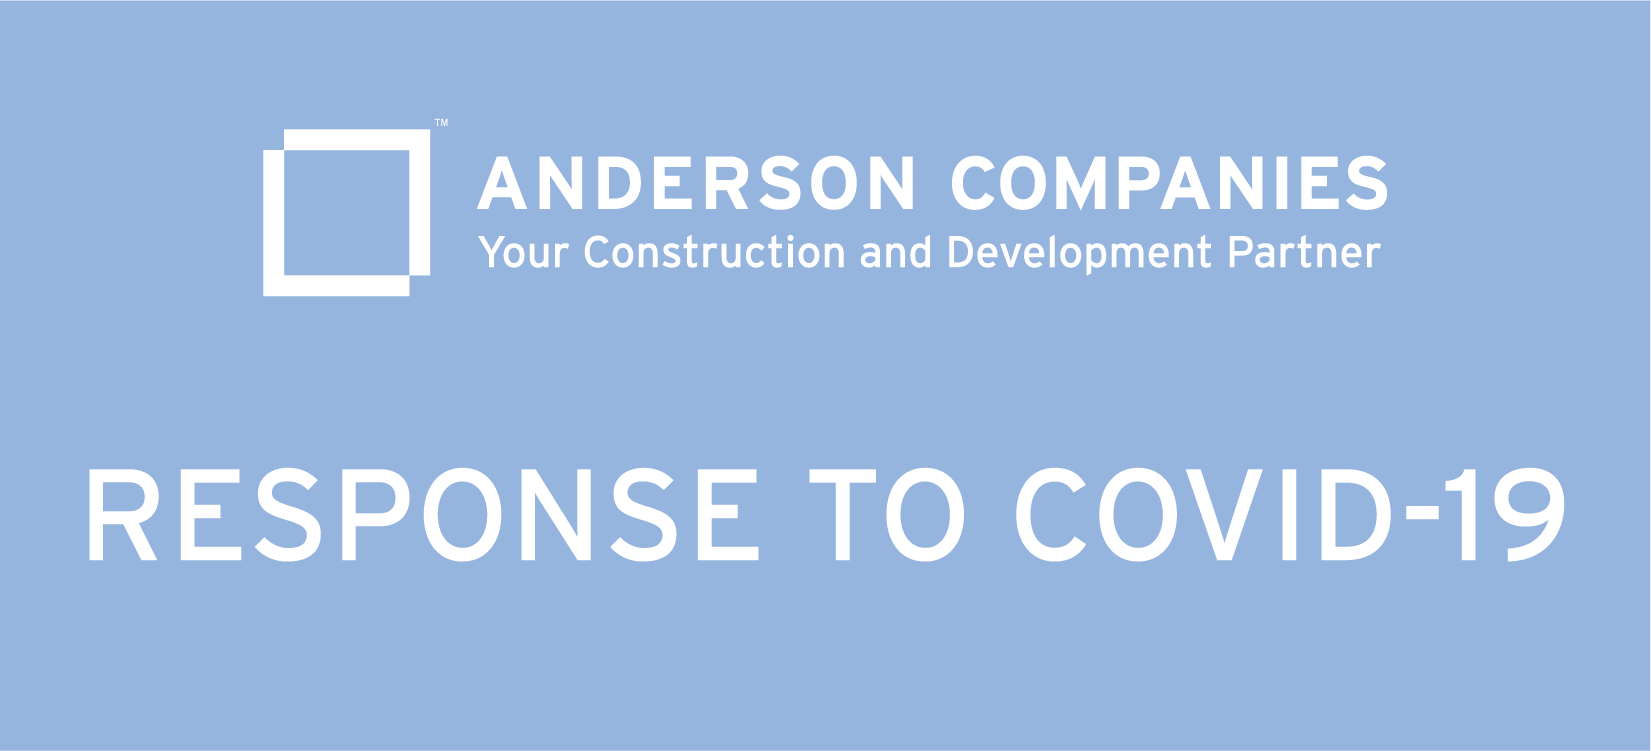 Anderson Companies Response to COVID-19